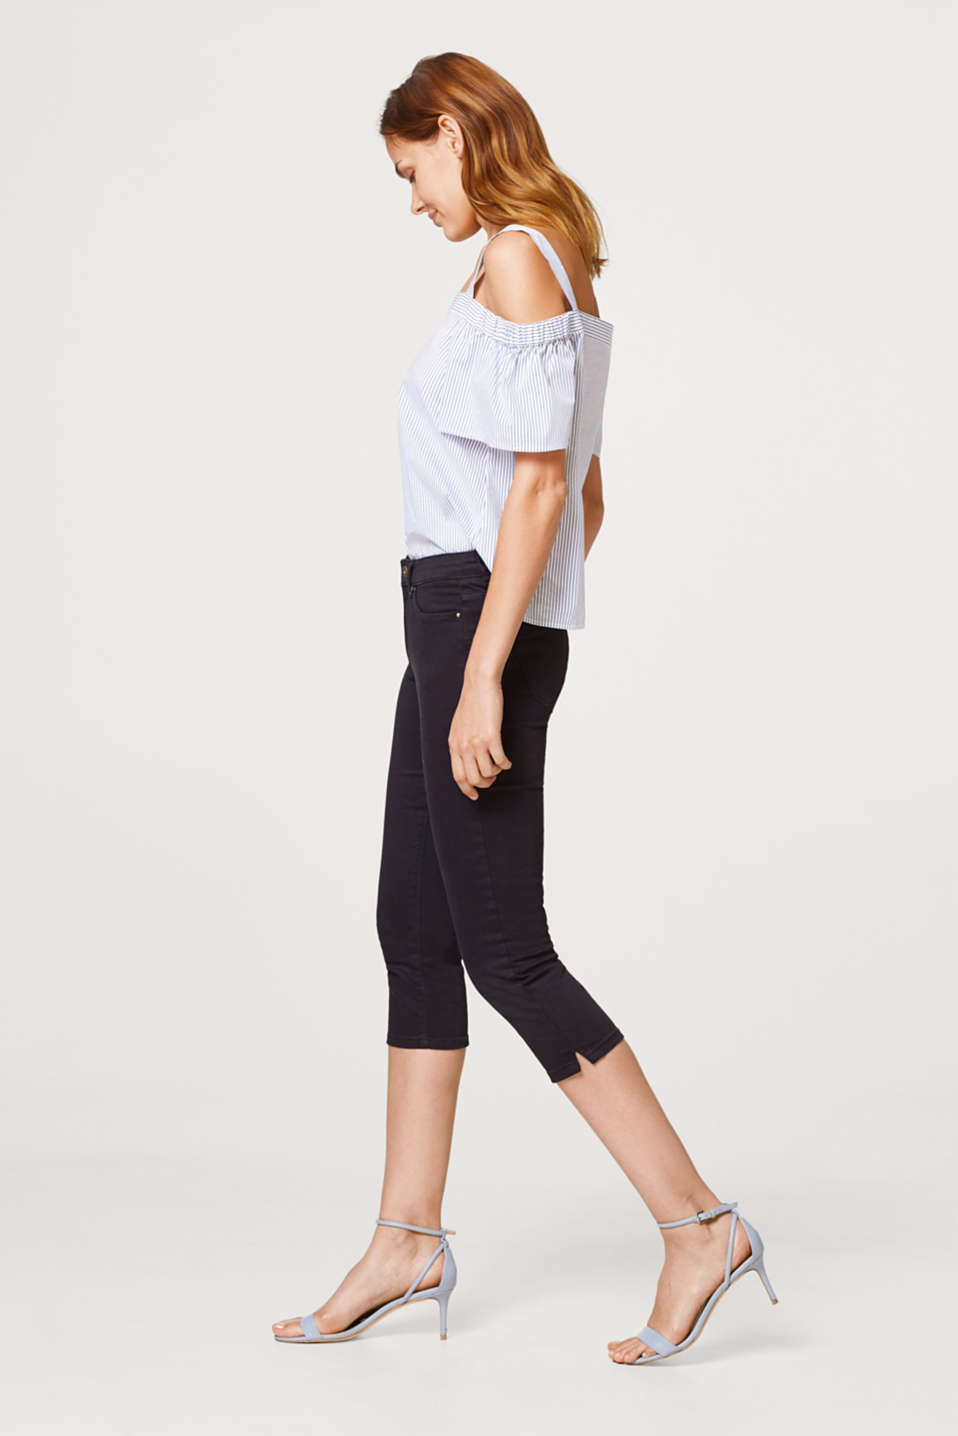 Capris made of cotton with added stretch for comfort